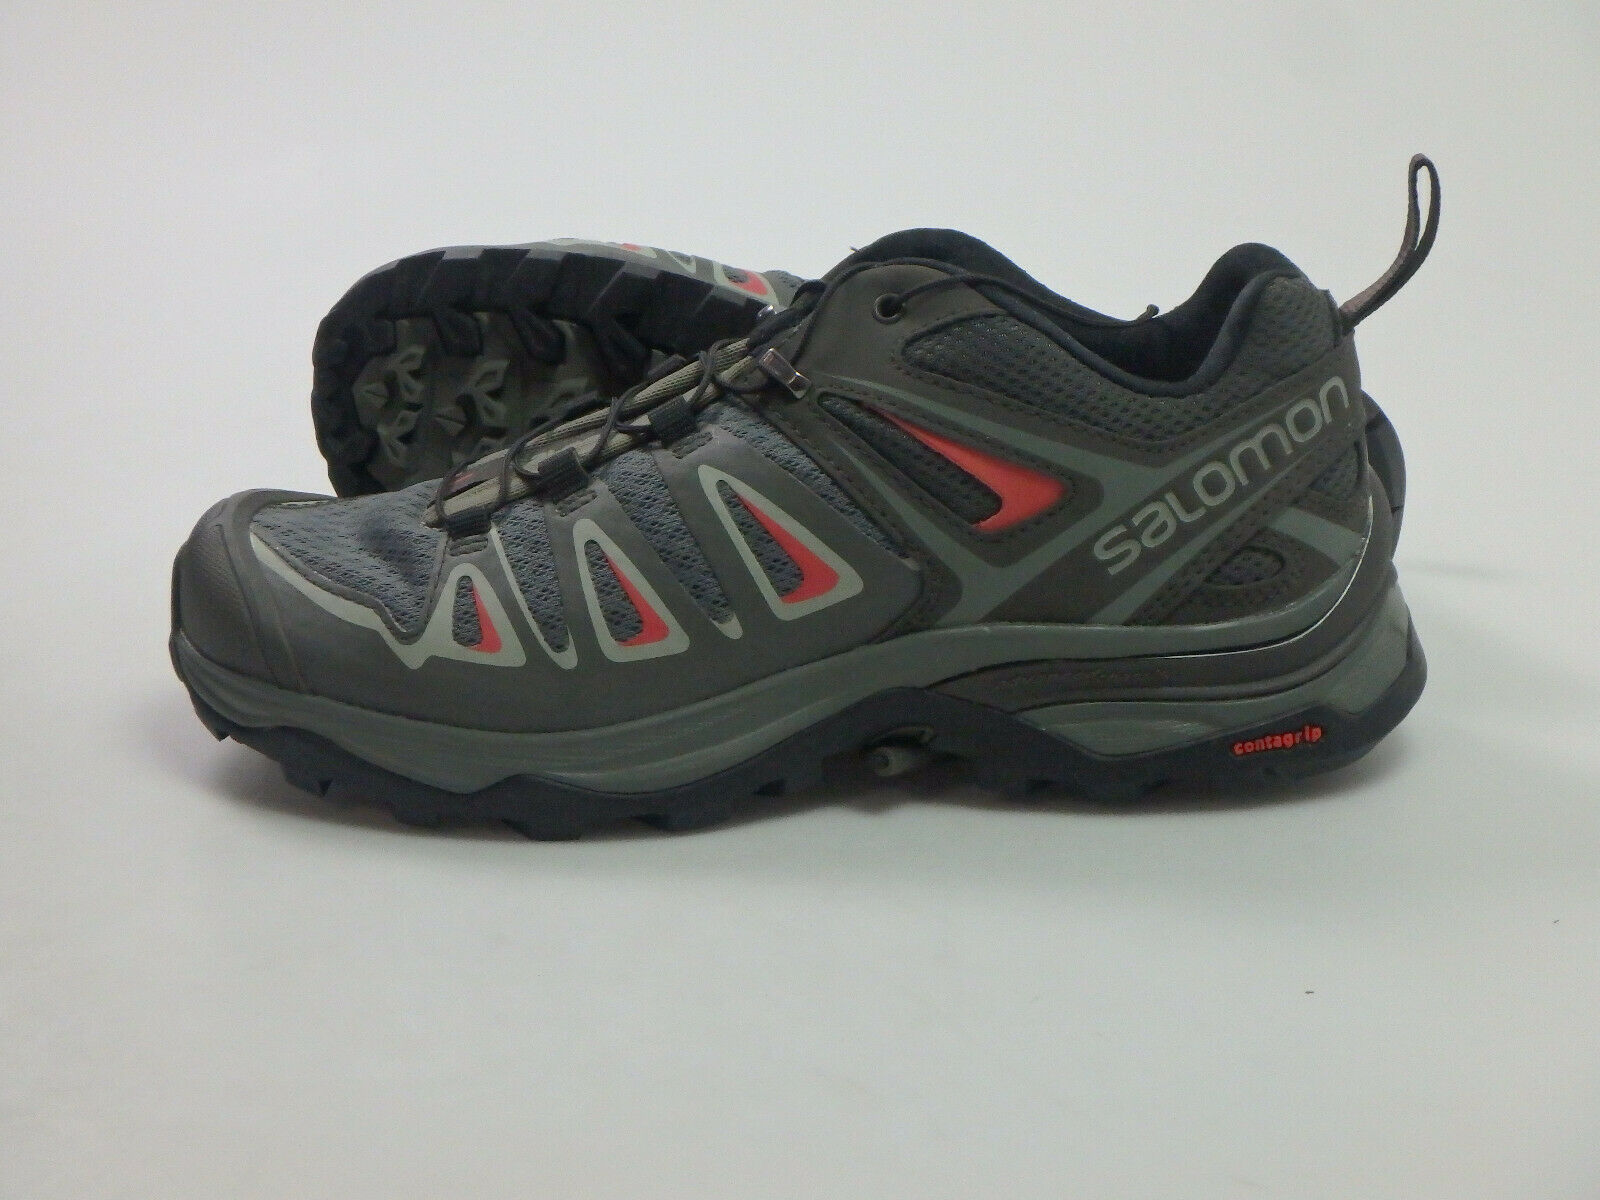 Salomon  31599 X Ultra 3 Low Walre Hire Sautope Escursionismo Donna Tg. 37 13 GRIGIO